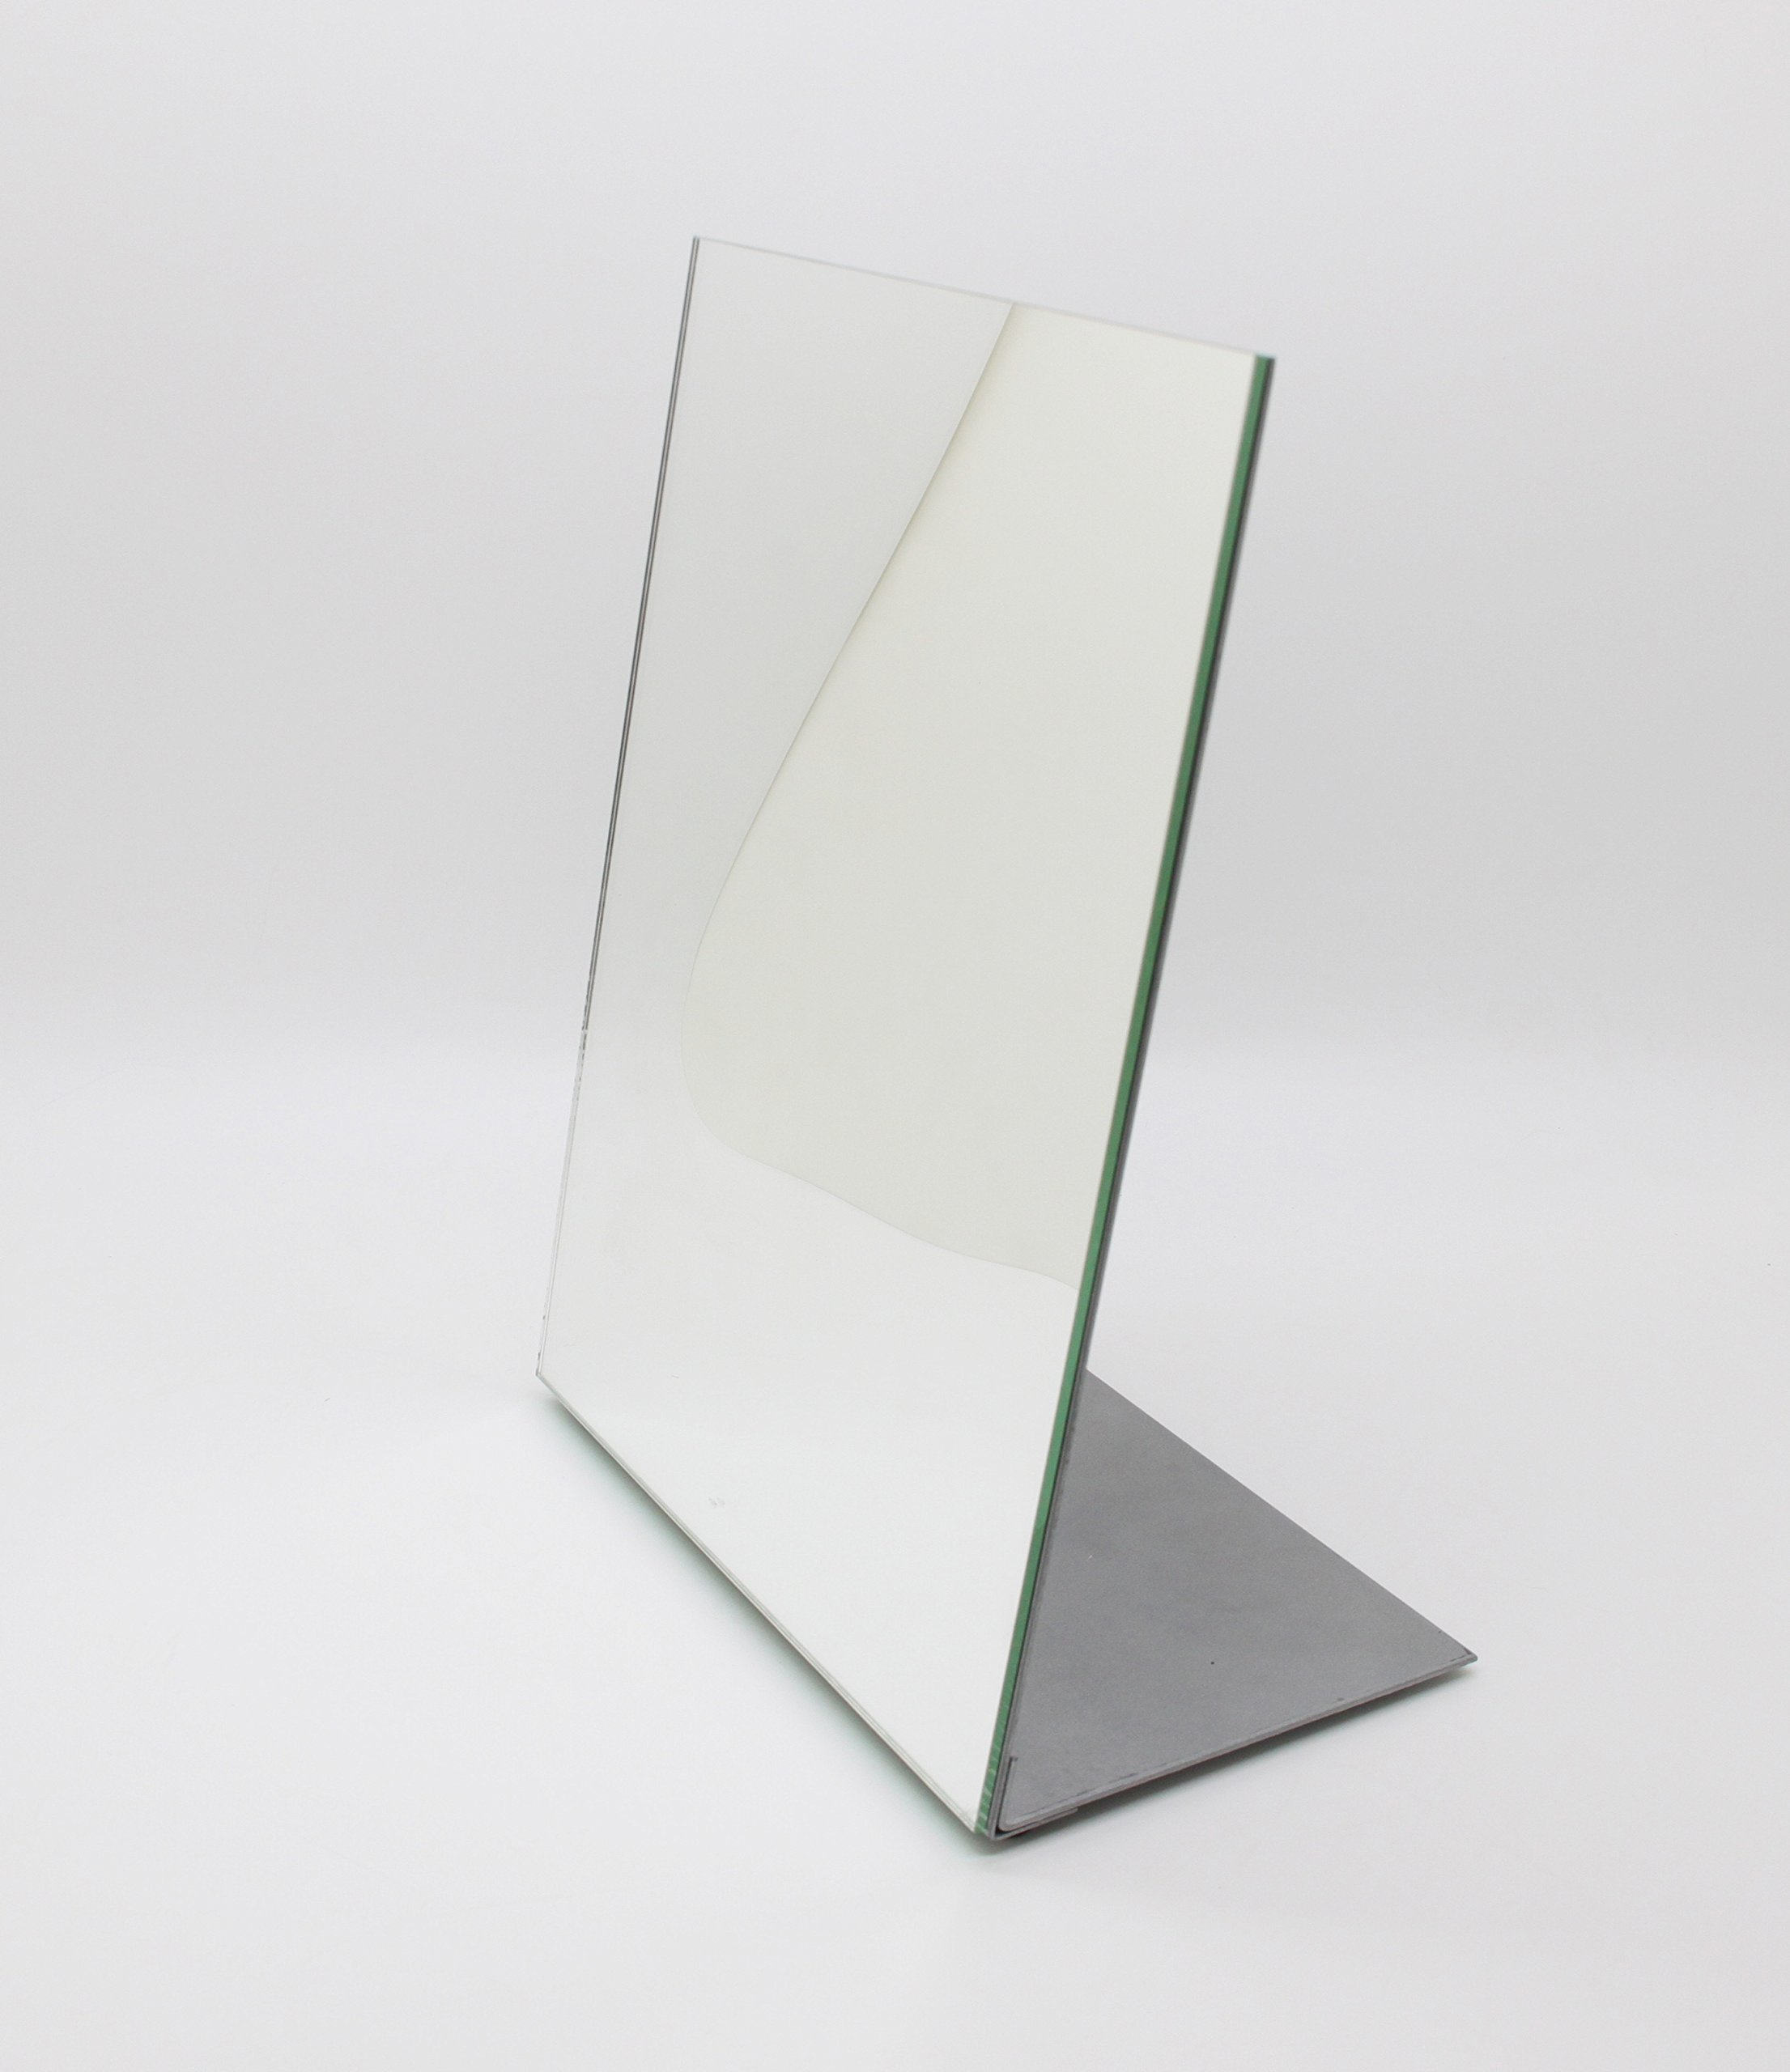 "FixtureDisplays 8.5x10.8"" Metal Retail Make-up Glass Mirror 15948! - FixtureDisplays 8.5 x 11"" Self-Portrait Slanted Metal Retail Make up Glass Mirror. Use at home,trade shows, office, retail stores for make up or jewelry, spas! This metal/glass mirror weighs 3.3 lbs. Easily assembled or to knock down for travel. An end to the problems with hand-held or flimsy, small mirrors that won't stay straight. 8.5"" x 11"" glass mirror mounted on carbon steel frame. Steel is powder coated silver in color. Steel base is 4.5"" wide for superior stability. Leans slightly (78 degree) back for ease of observation. Overall dimmensions: 8.5"" W x 10.8"" H x 4.5"" depth. Shipping to Canada and Mexico: import duty and fees apply. - mirrors-bedroom-decor, bedroom-decor, bedroom - 81KJZjr3FjL -"